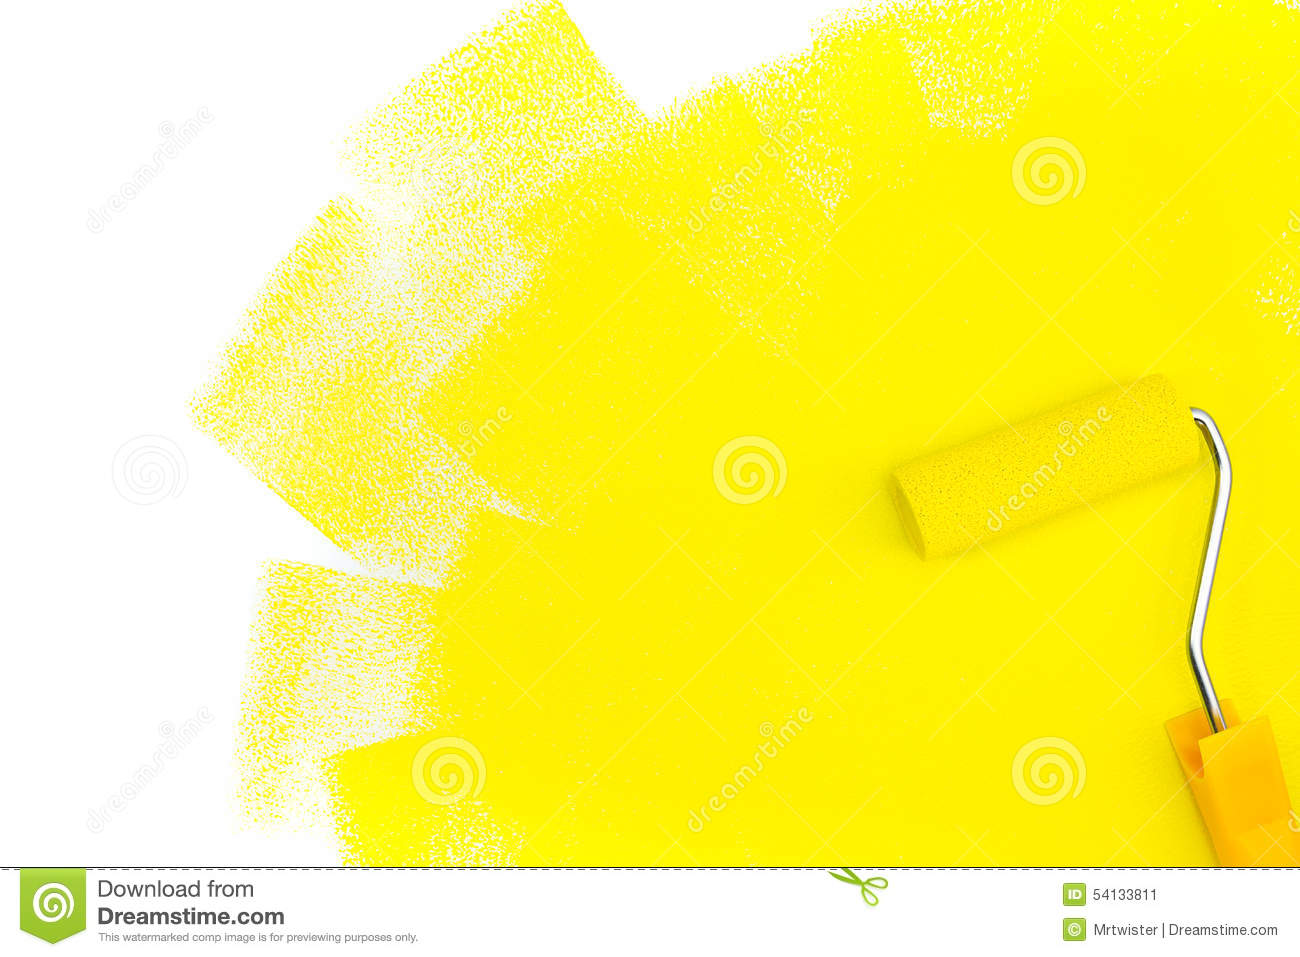 Paint Roller With Yellow Paint Stock Image - Image of nobody, home ...